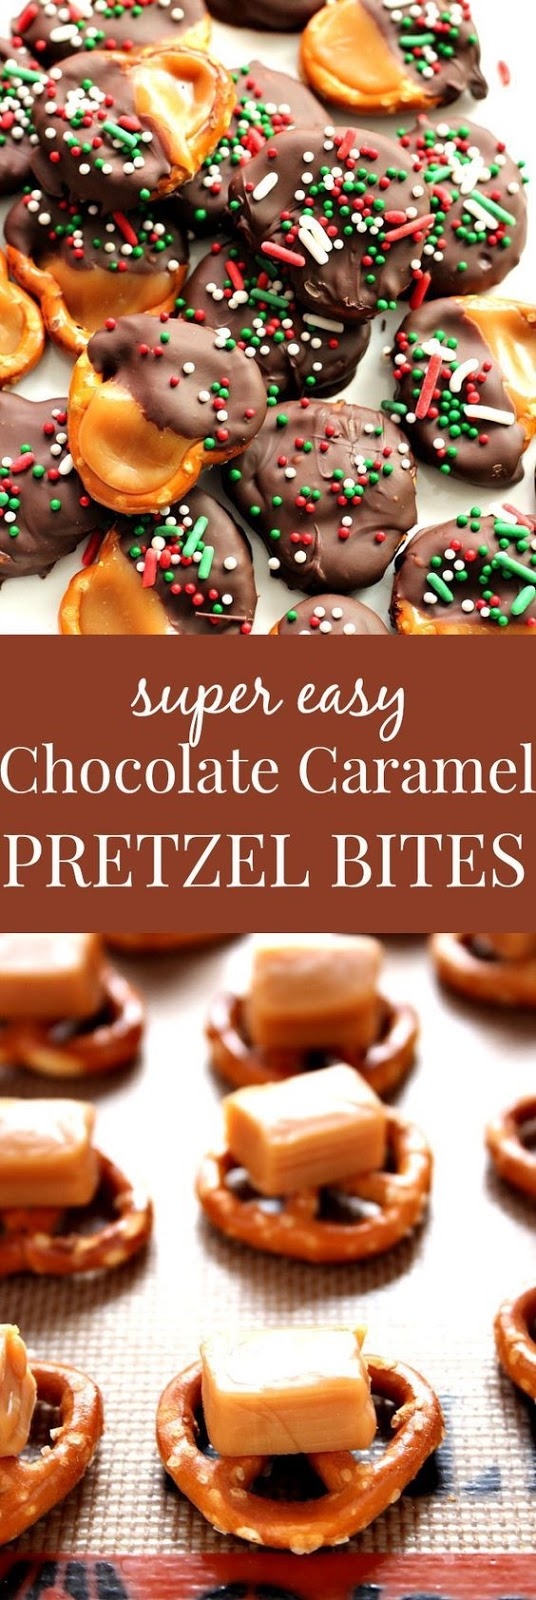 Easy Chocolate Caramel Pretzel Bites Recipe Card